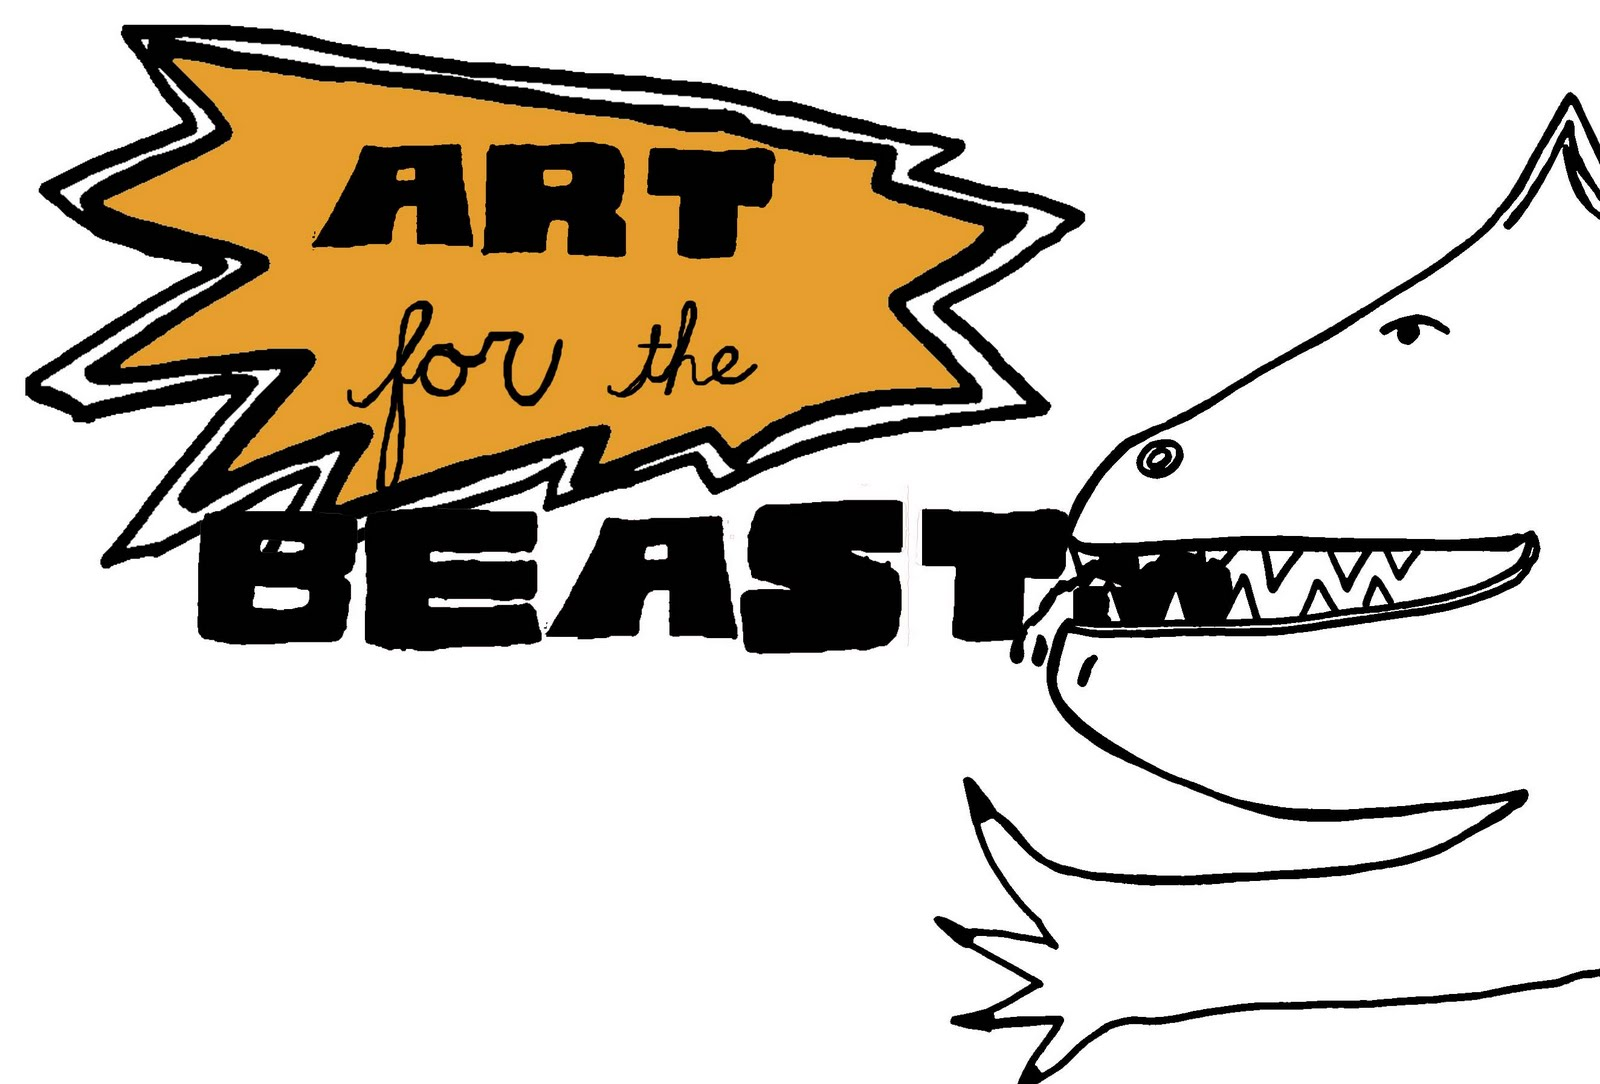 ART FOR THE BEASTS